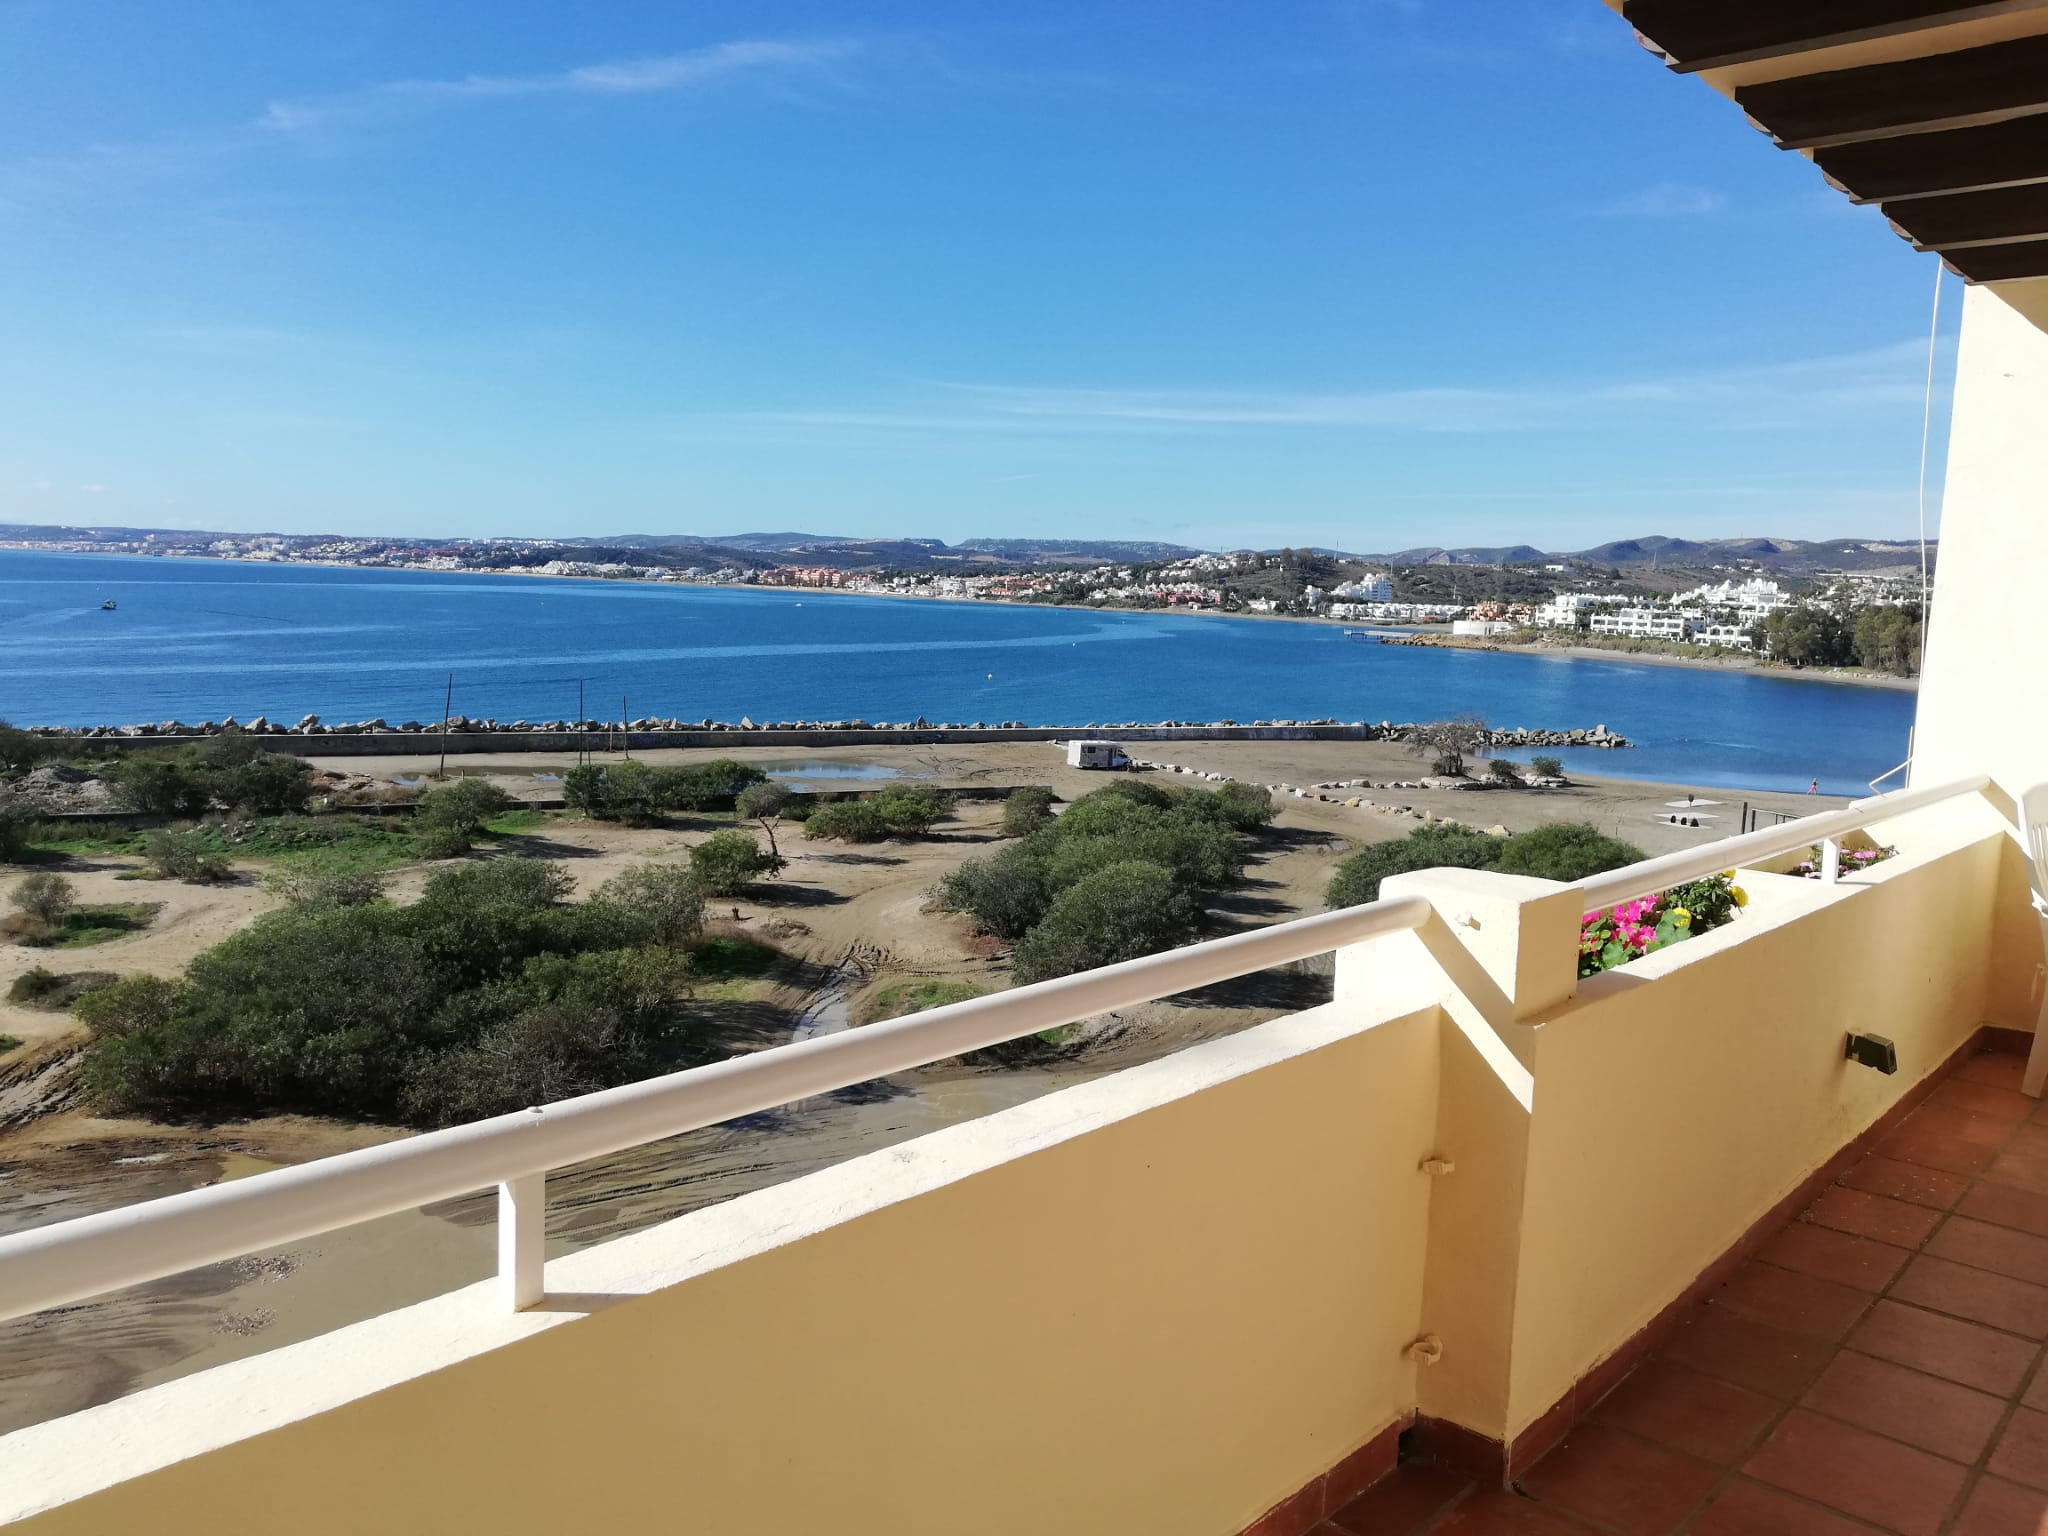 2 bedroom seafront apartment in Estepona with views of Gibraltar - mibgroup.es